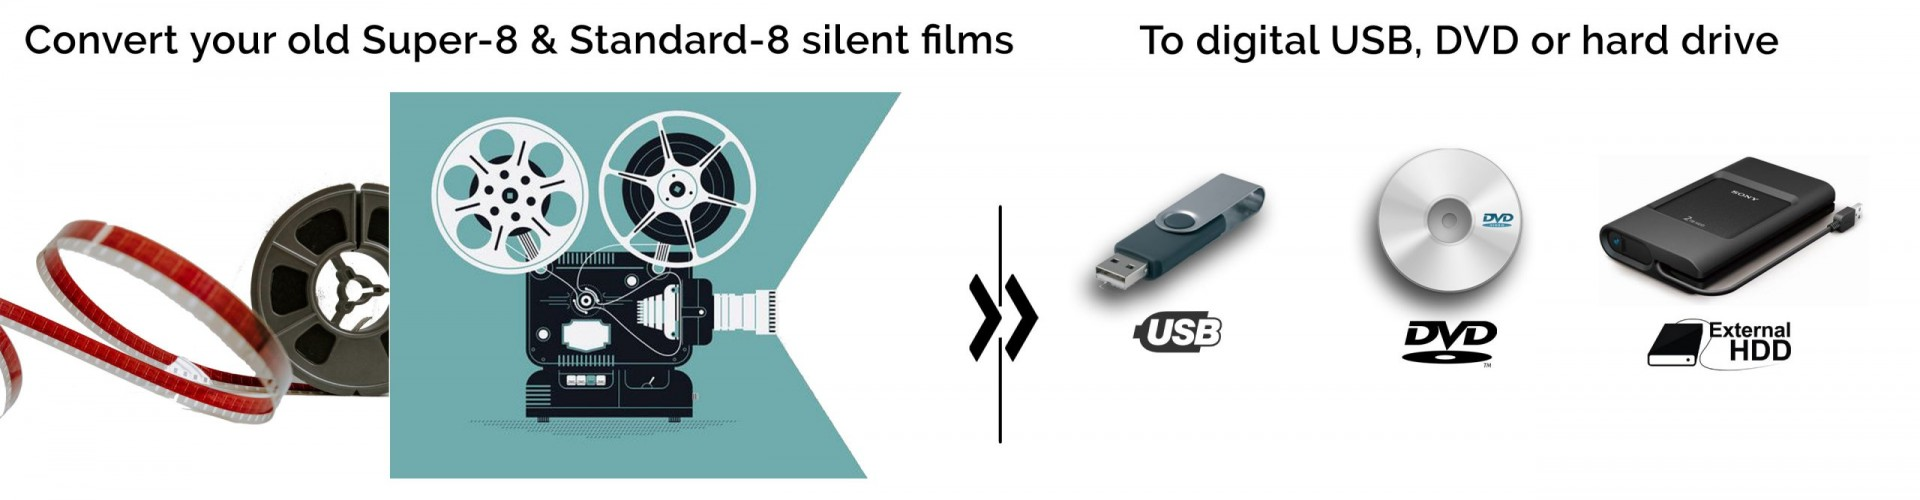 Super 8 Film And Standard 8 Film To Digital Conversion Video Essentials